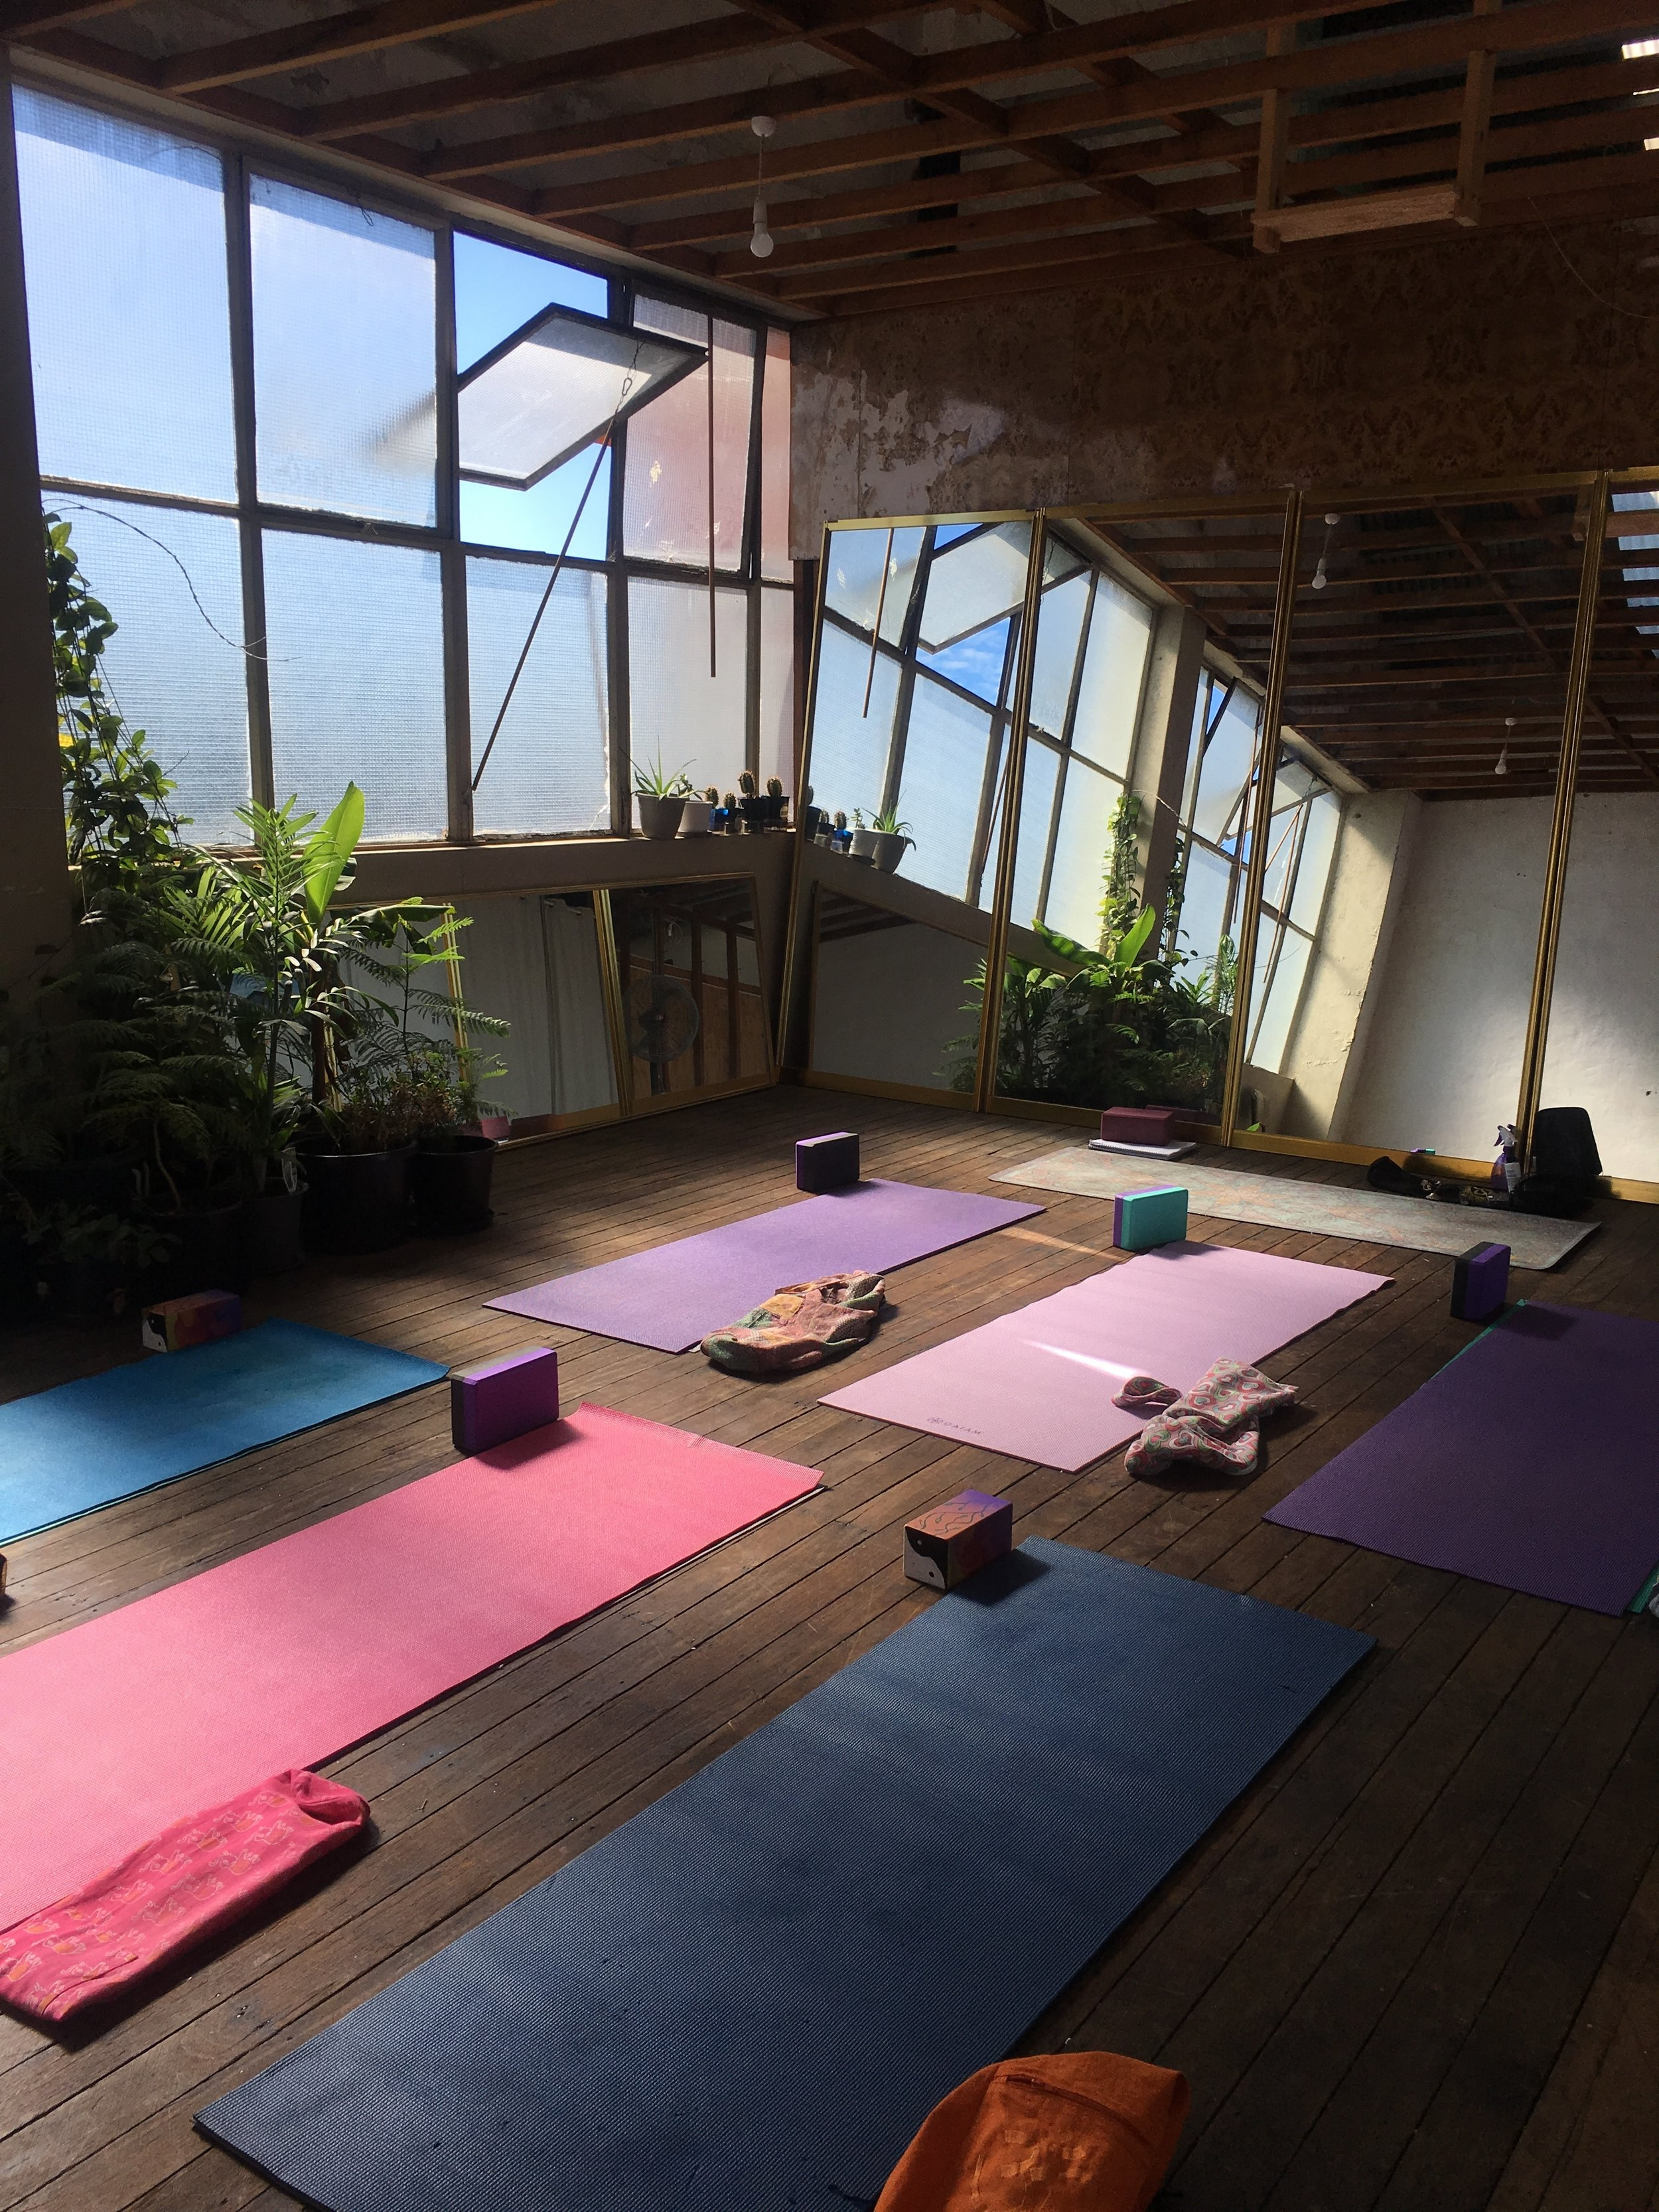 The Nauti Sun Room, all set up for Yoga and relaxation.